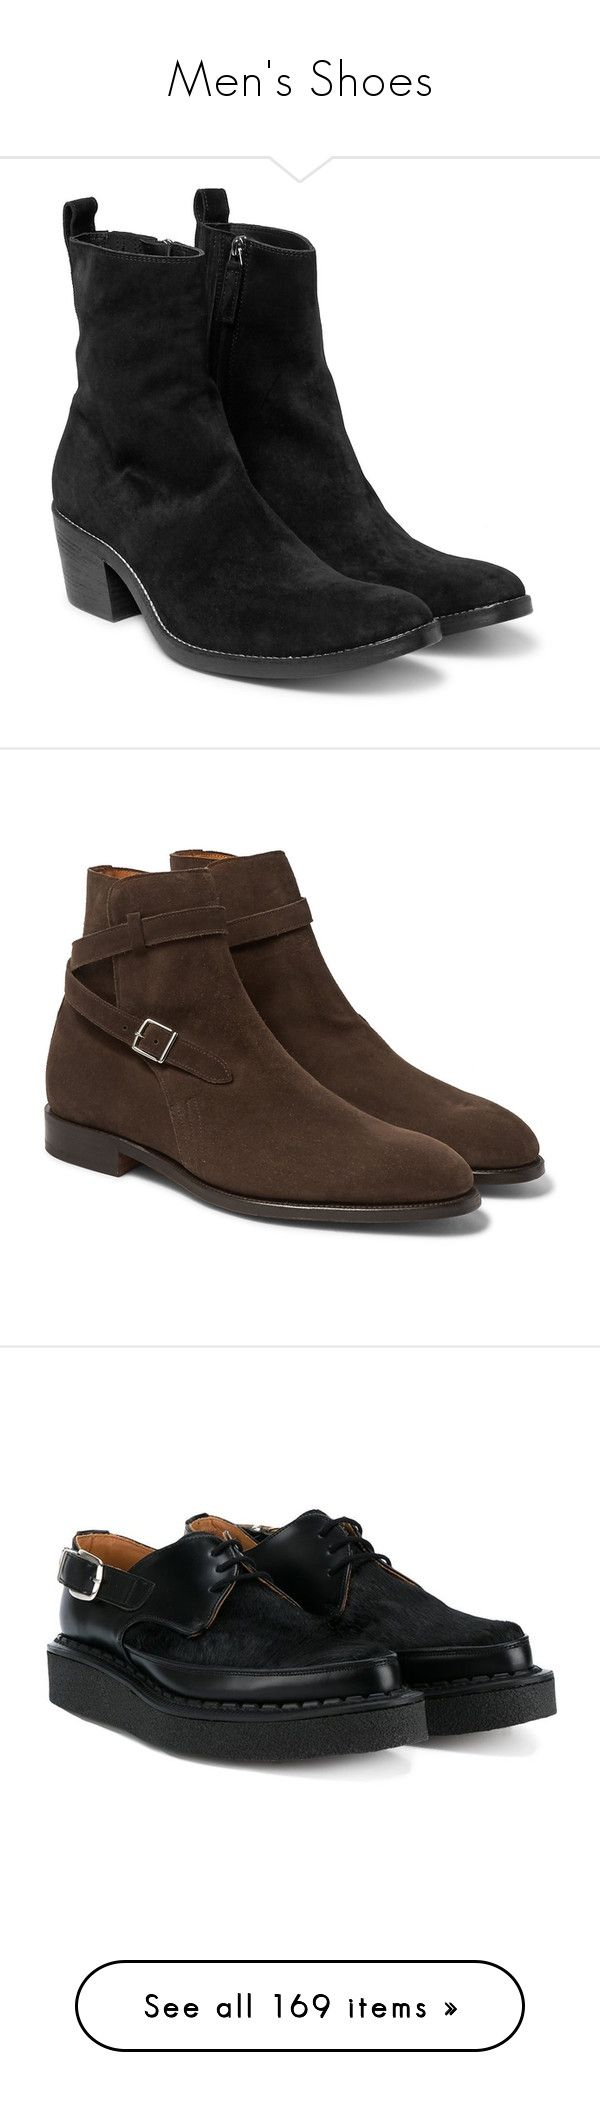 """Men's Shoes"" by kahunakole ❤ liked on Polyvore featuring men's fashion, men's shoes, men's boots, cuban heels mens shoes, mens cuban heel boots, mens suede boots, mens suede shoes, mens brown suede boots, mens brown suede shoes and mens brown shoes"